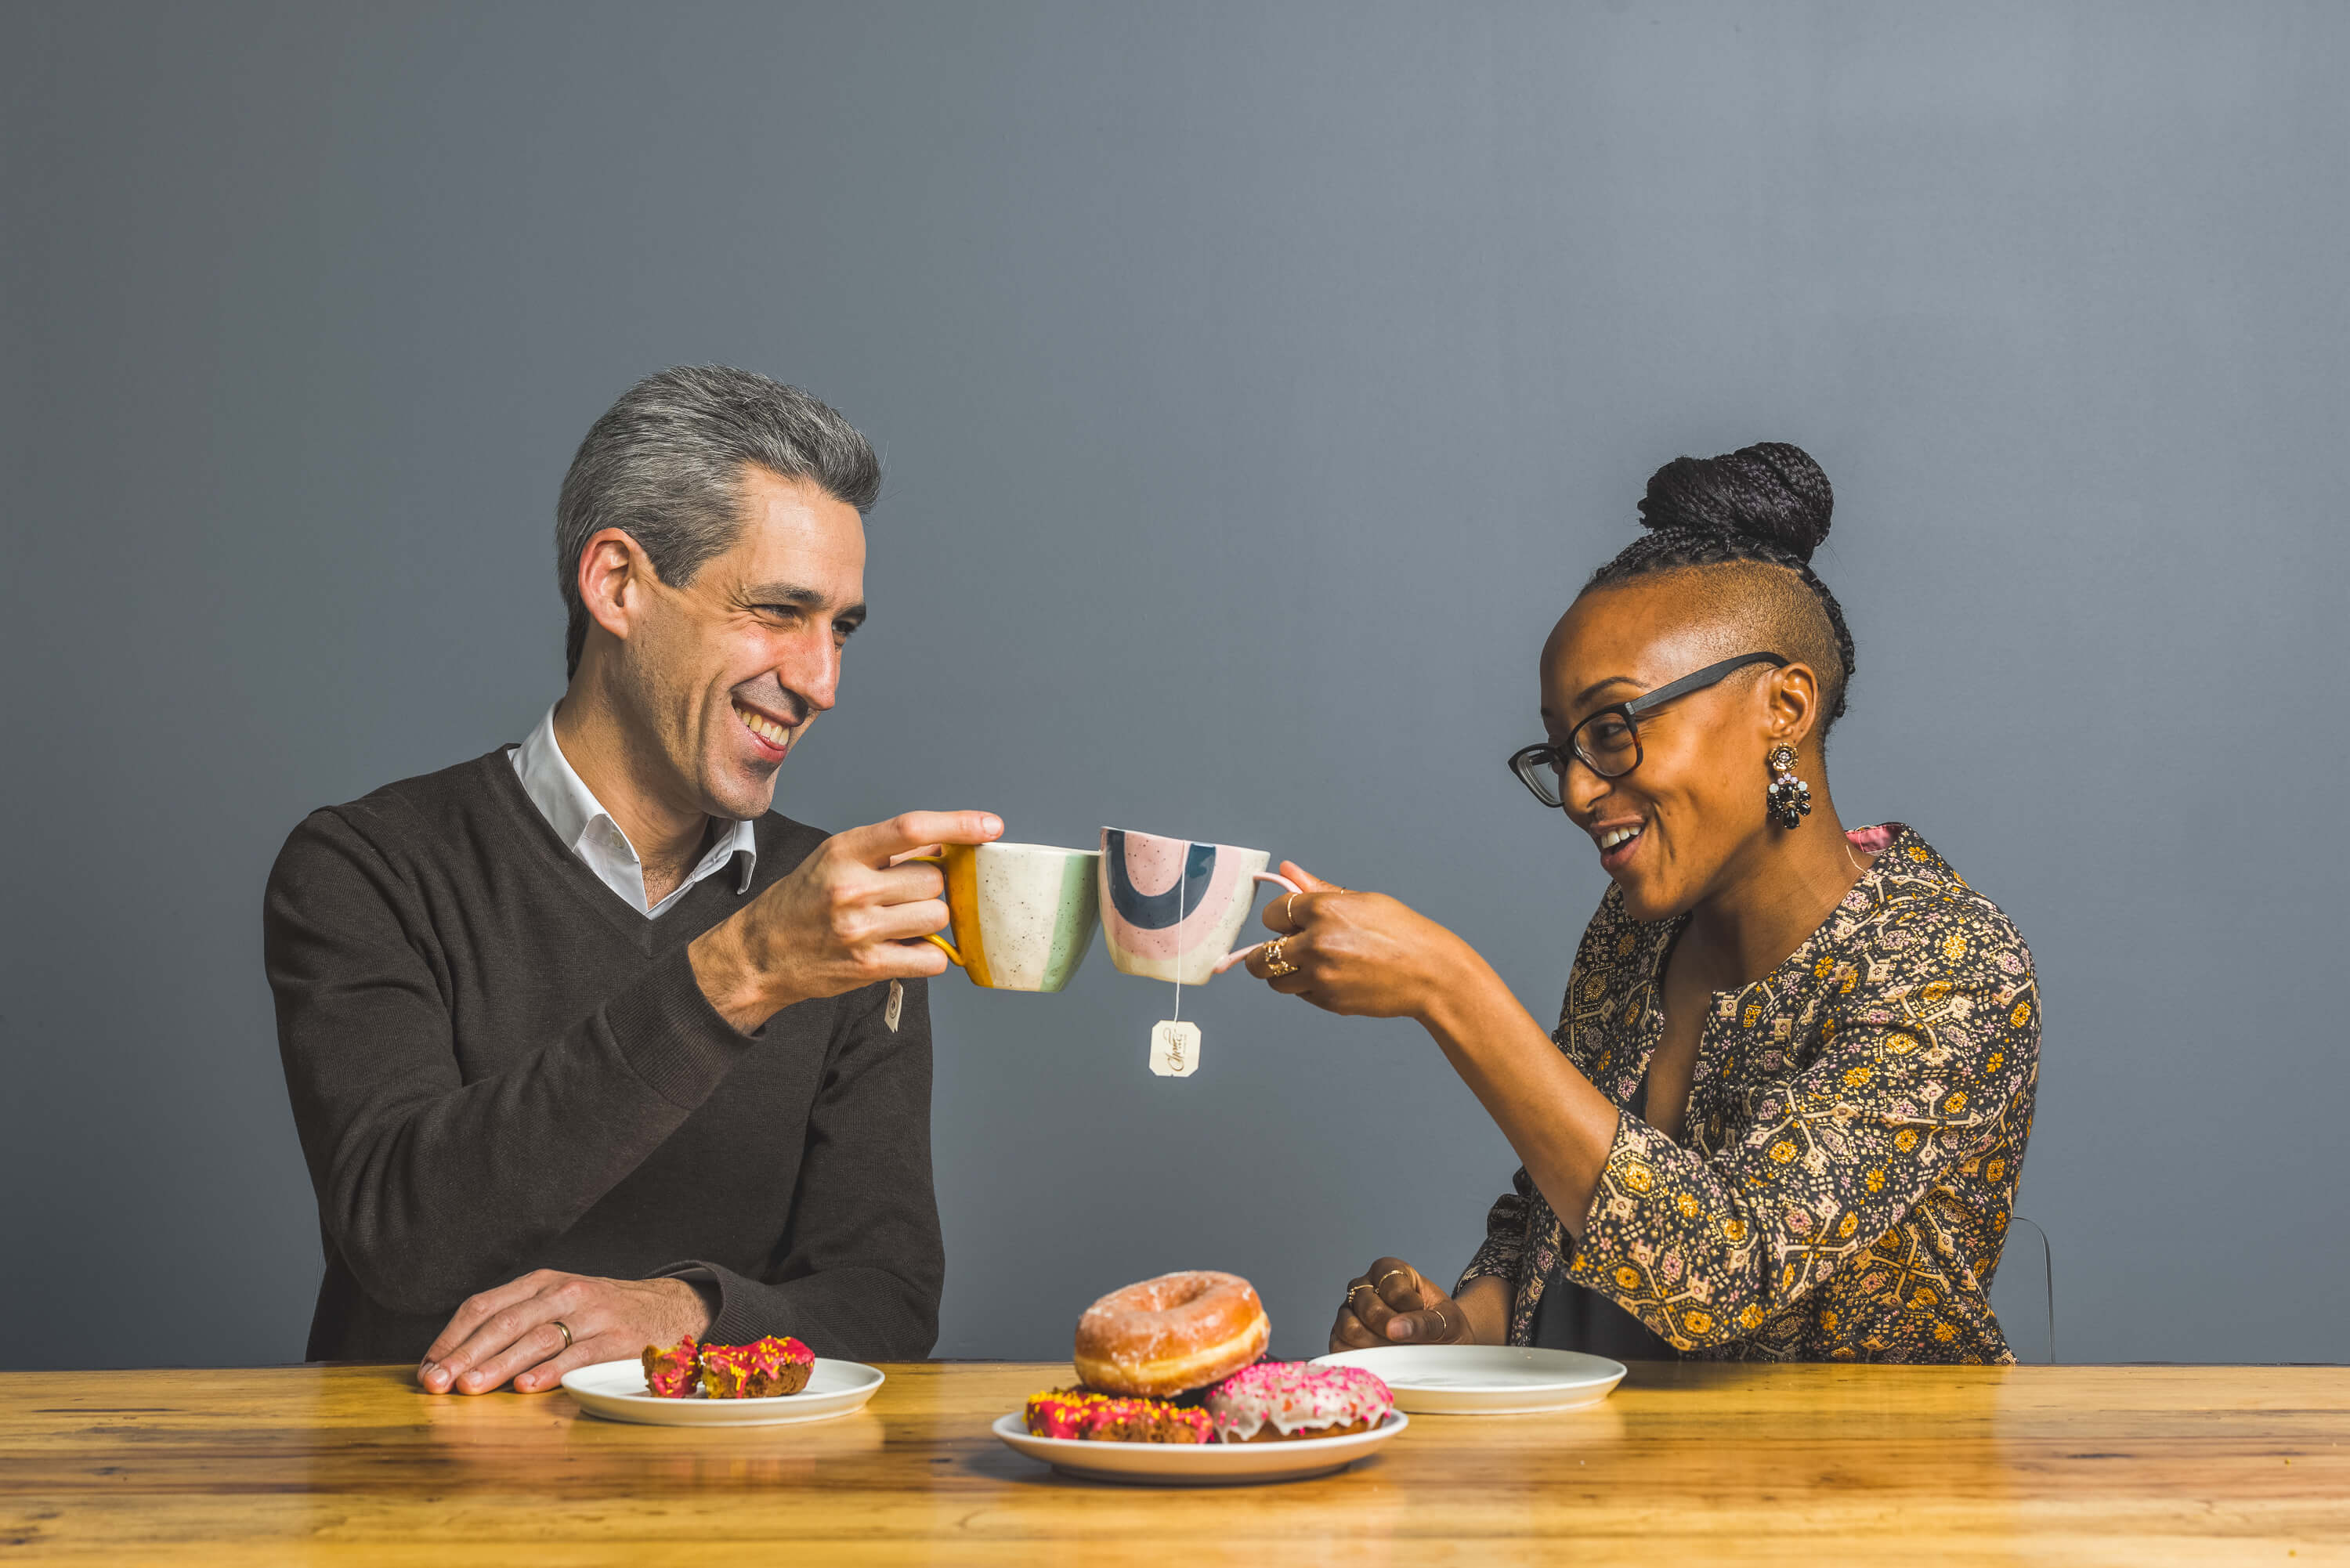 Glenance Green and Daniel Biss sit down and share their opinions over coffee.